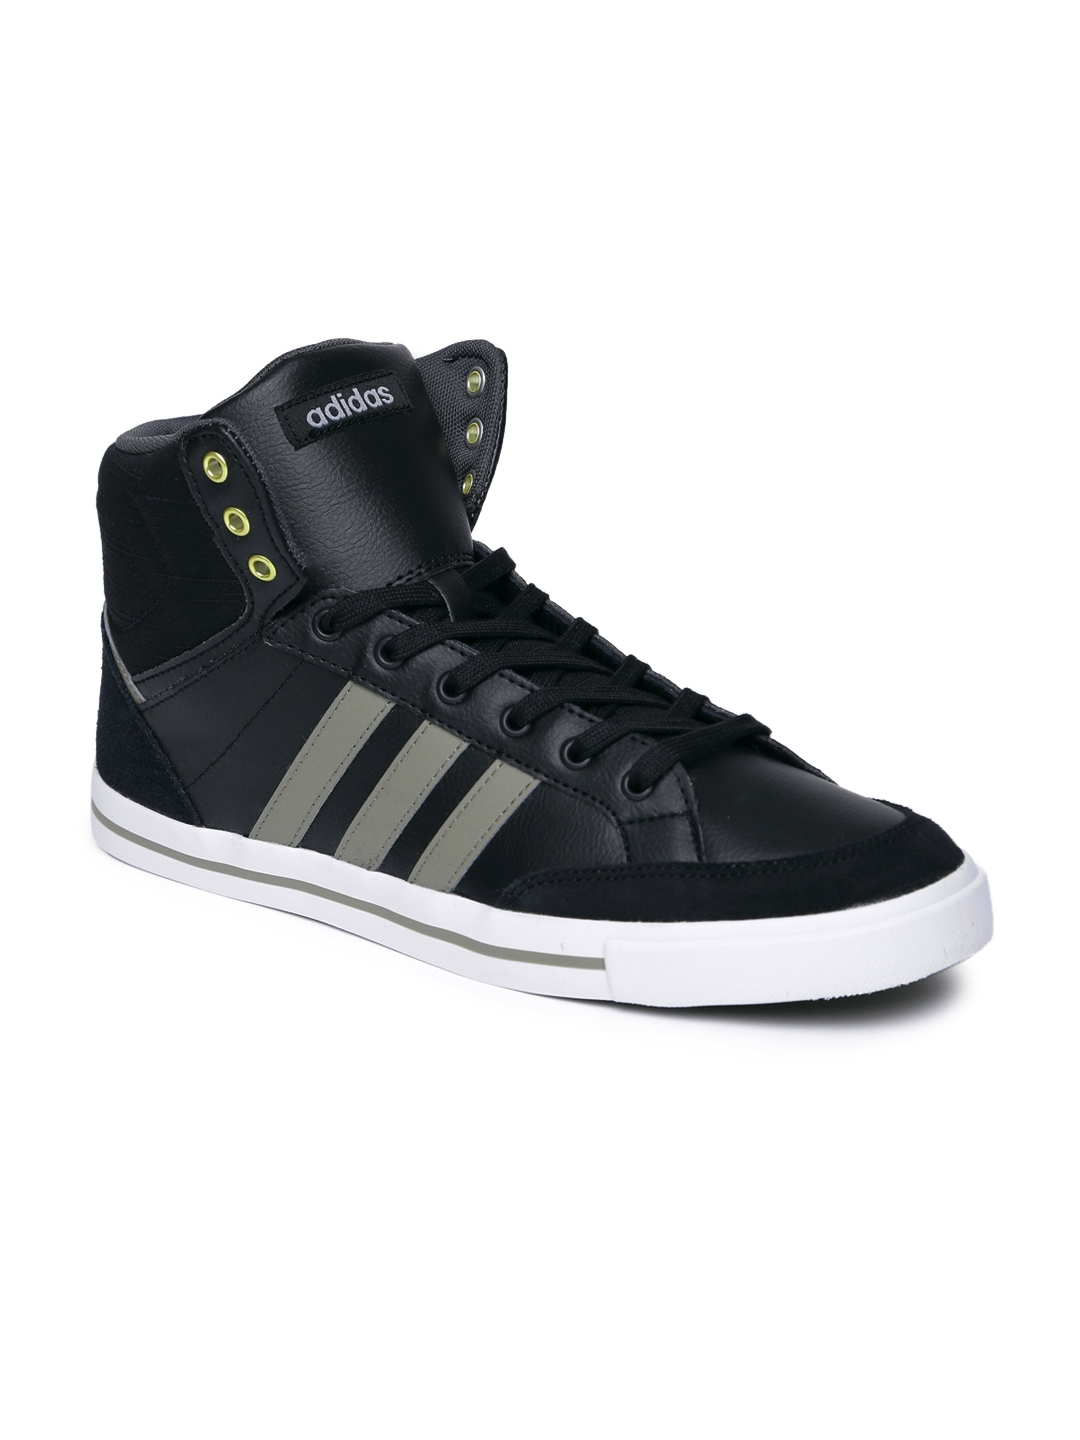 Adidas NEO Men Black Cacity Leather Mid-Top Sneakers